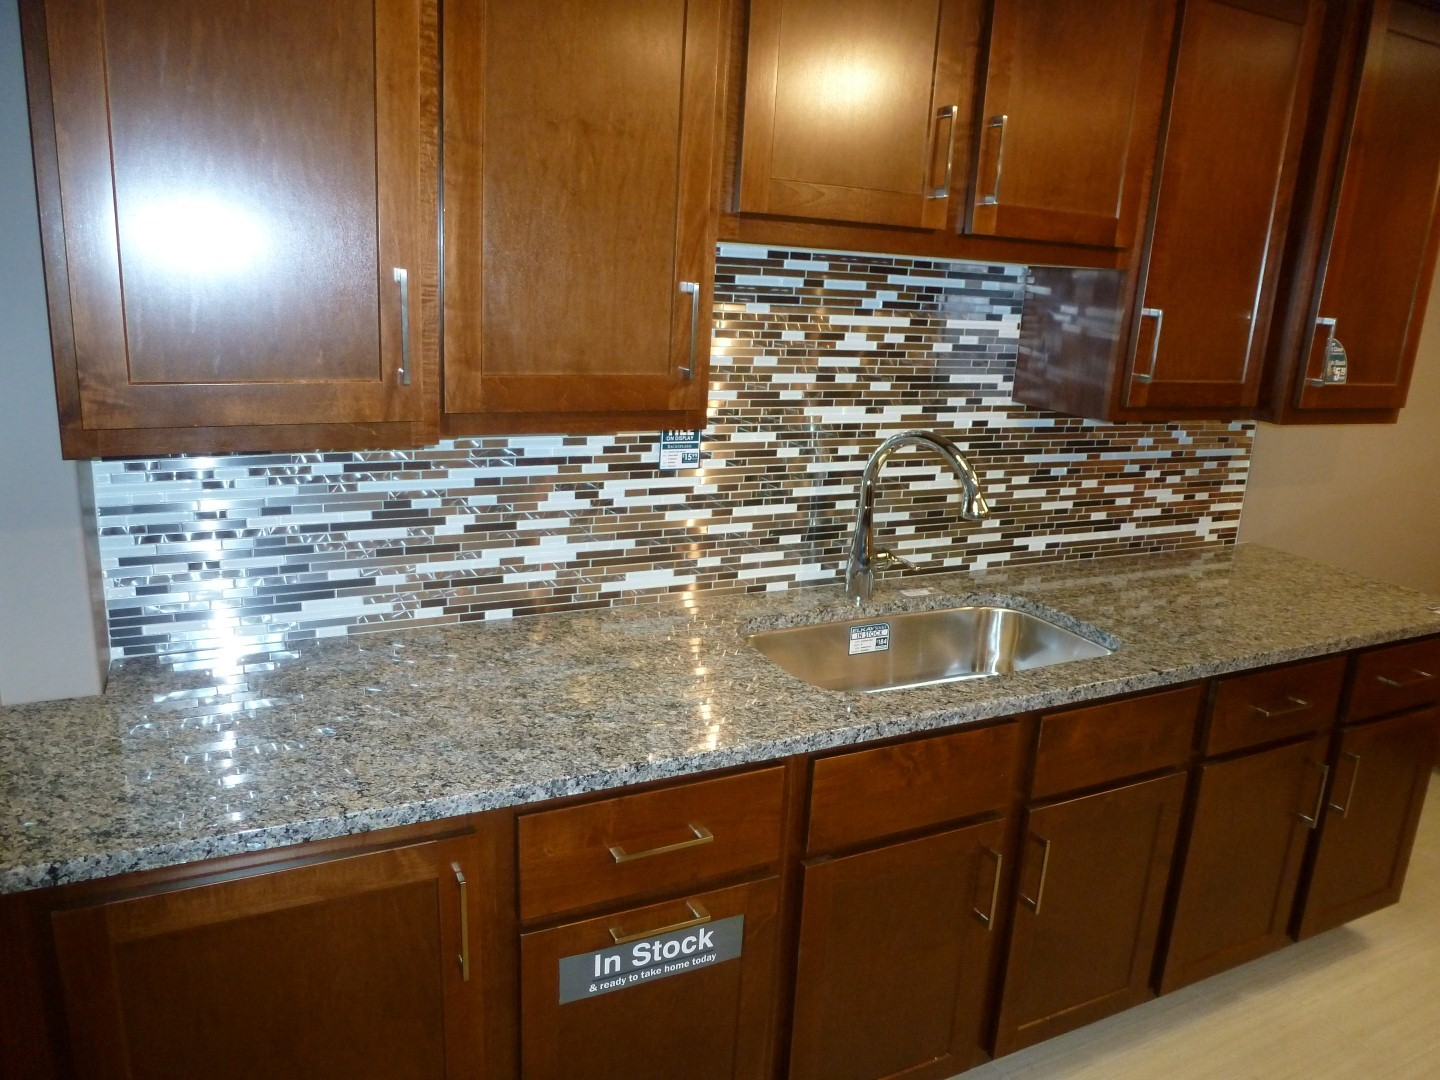 Metal and White Glass Random schluter strip Backsplash Tile Mosaic 15 1/2 with kitchen cabinet for kitchen decor ideas